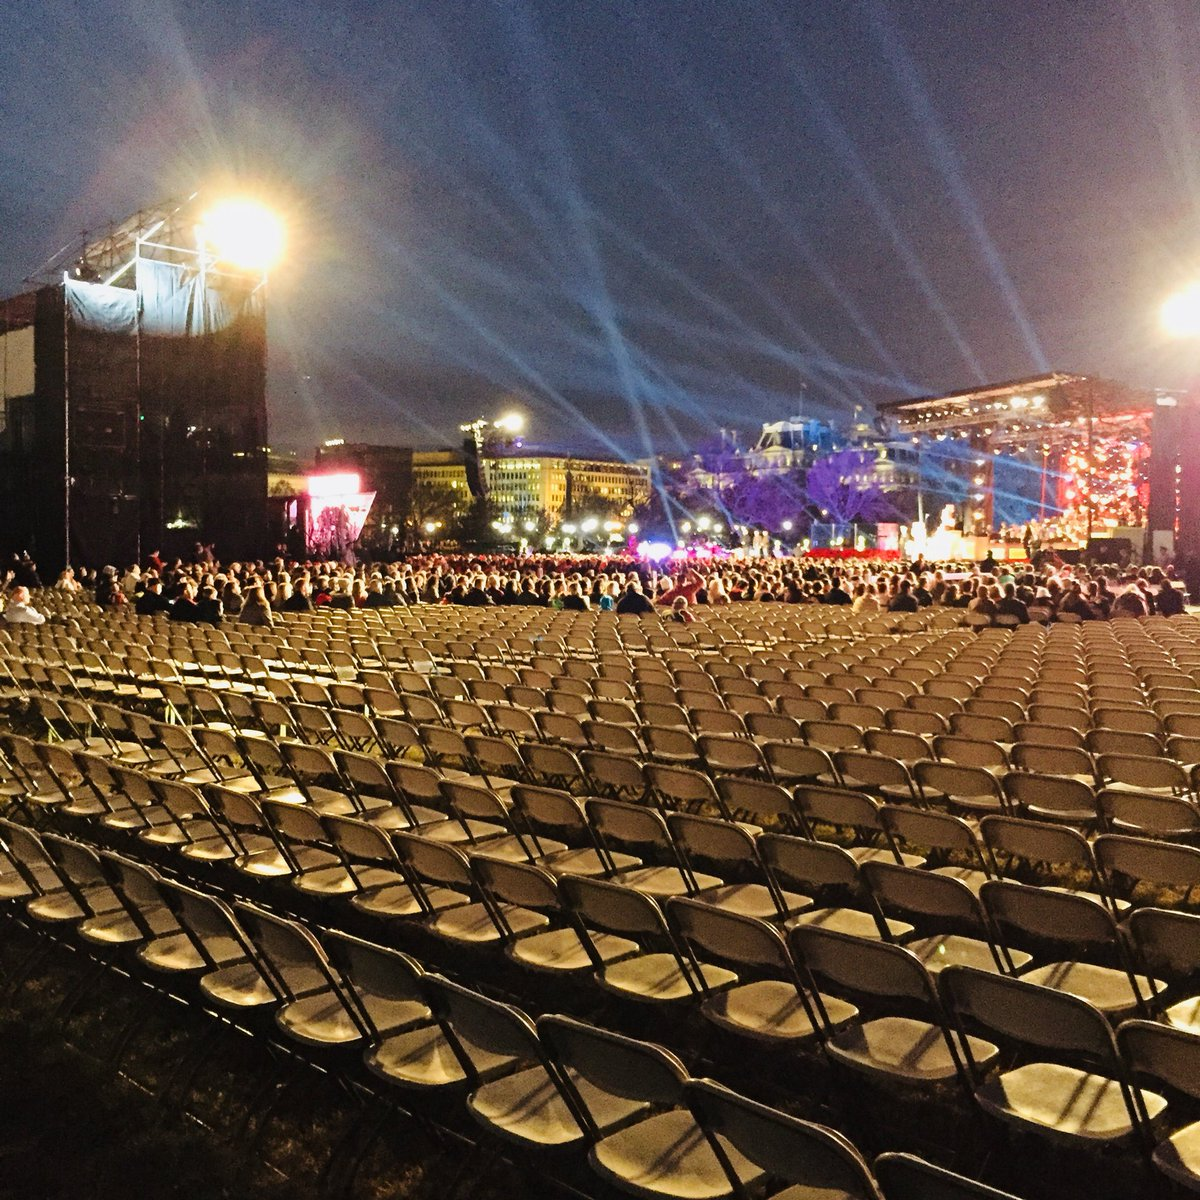 hugest crowd in history attends national christmas tree lighting ceremony